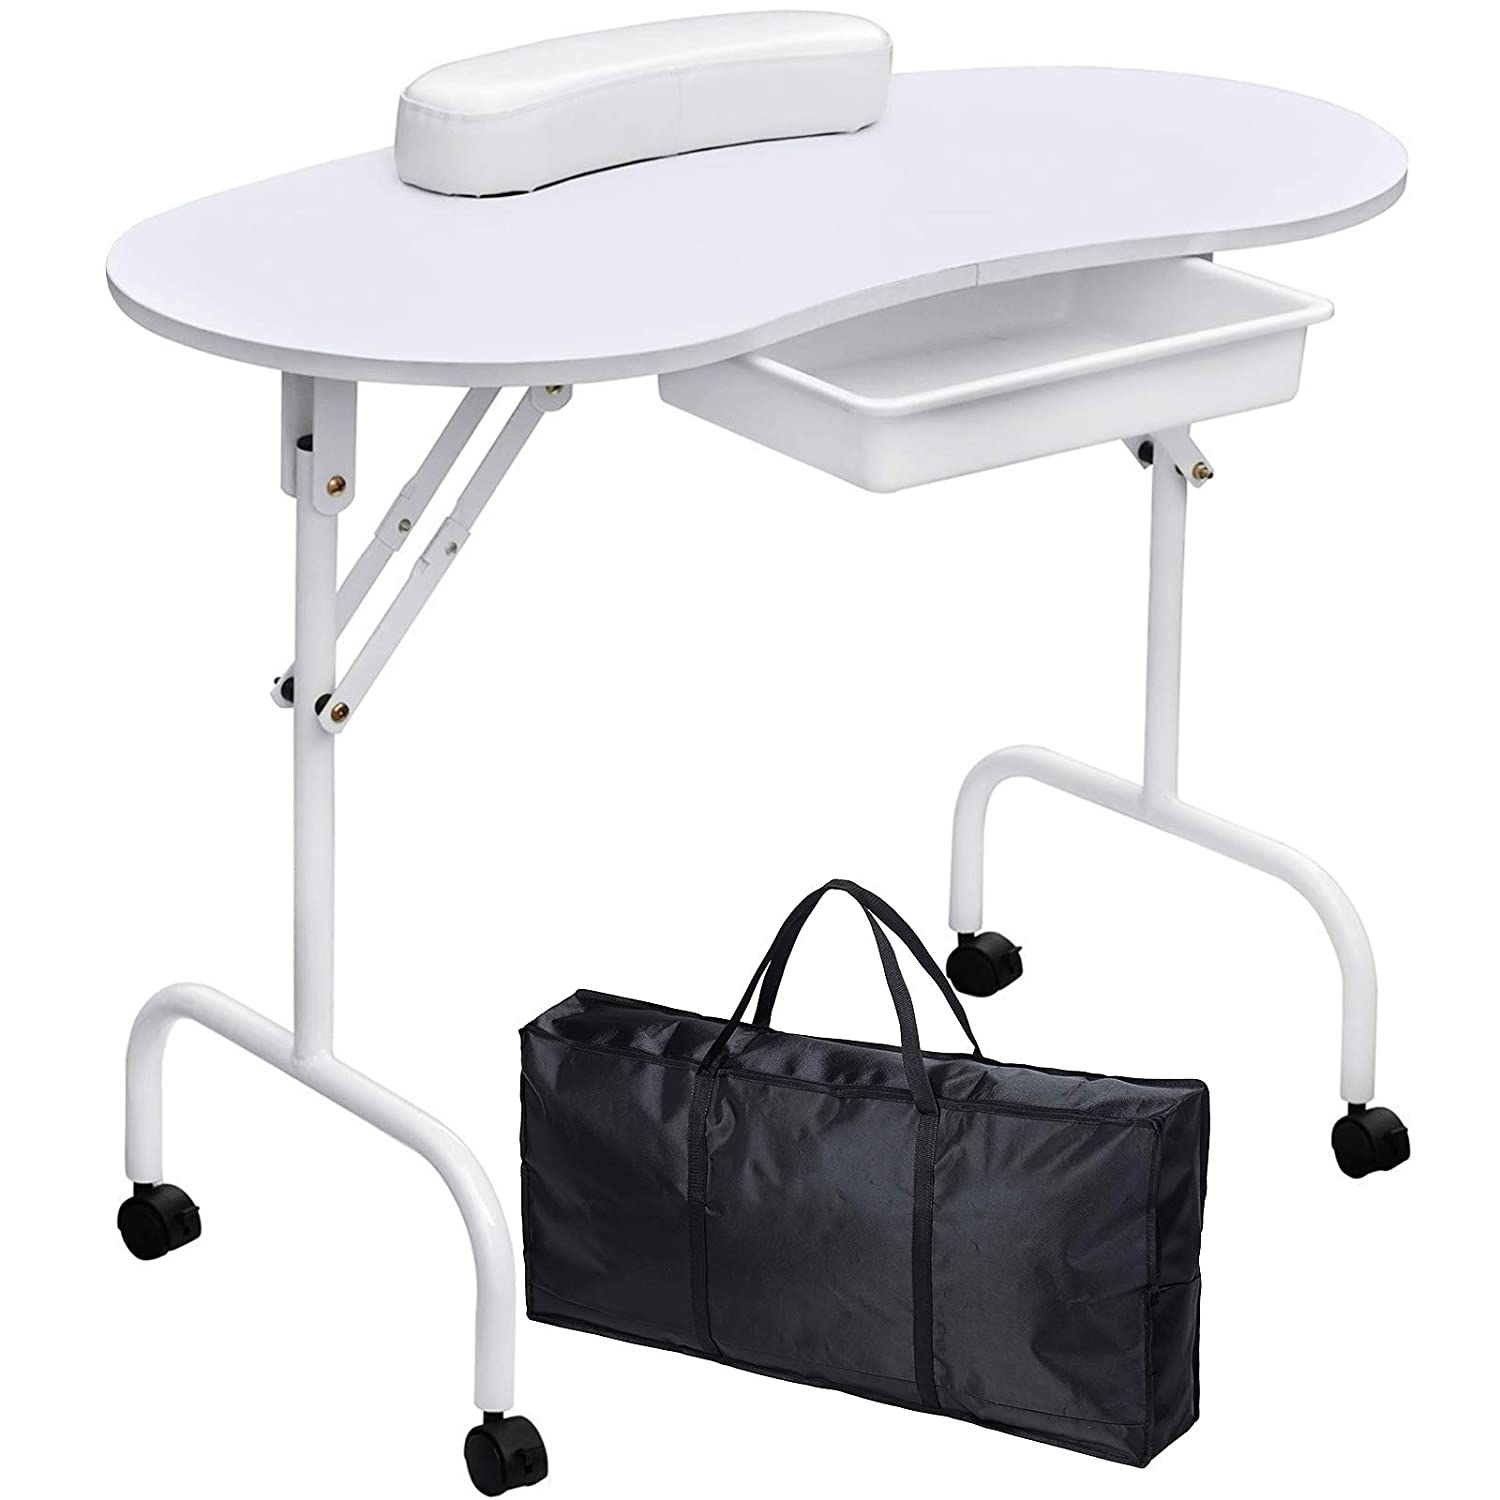 Manicure Nail Table, Kalolary Portable Folding Station Desk Movable Manicure Tech Table for Home Spa Beauty Salon with Sponge Wrist Cushion, Storge Drawer, Carry bag(White)